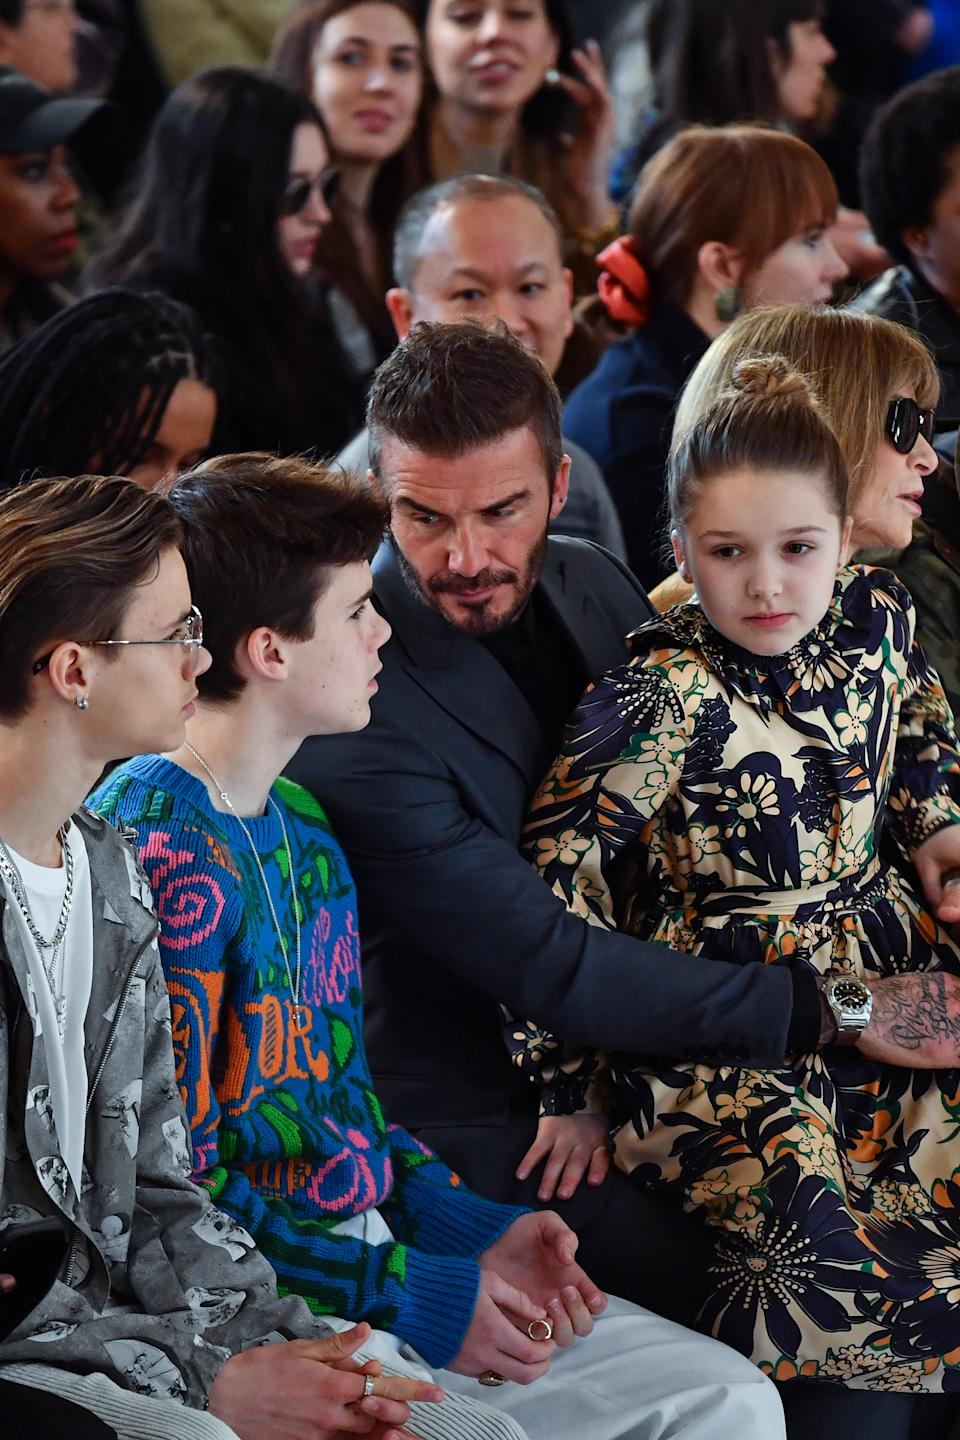 David Beckham sat with his three youngest children beside Anna Wintour [Image: Getty]